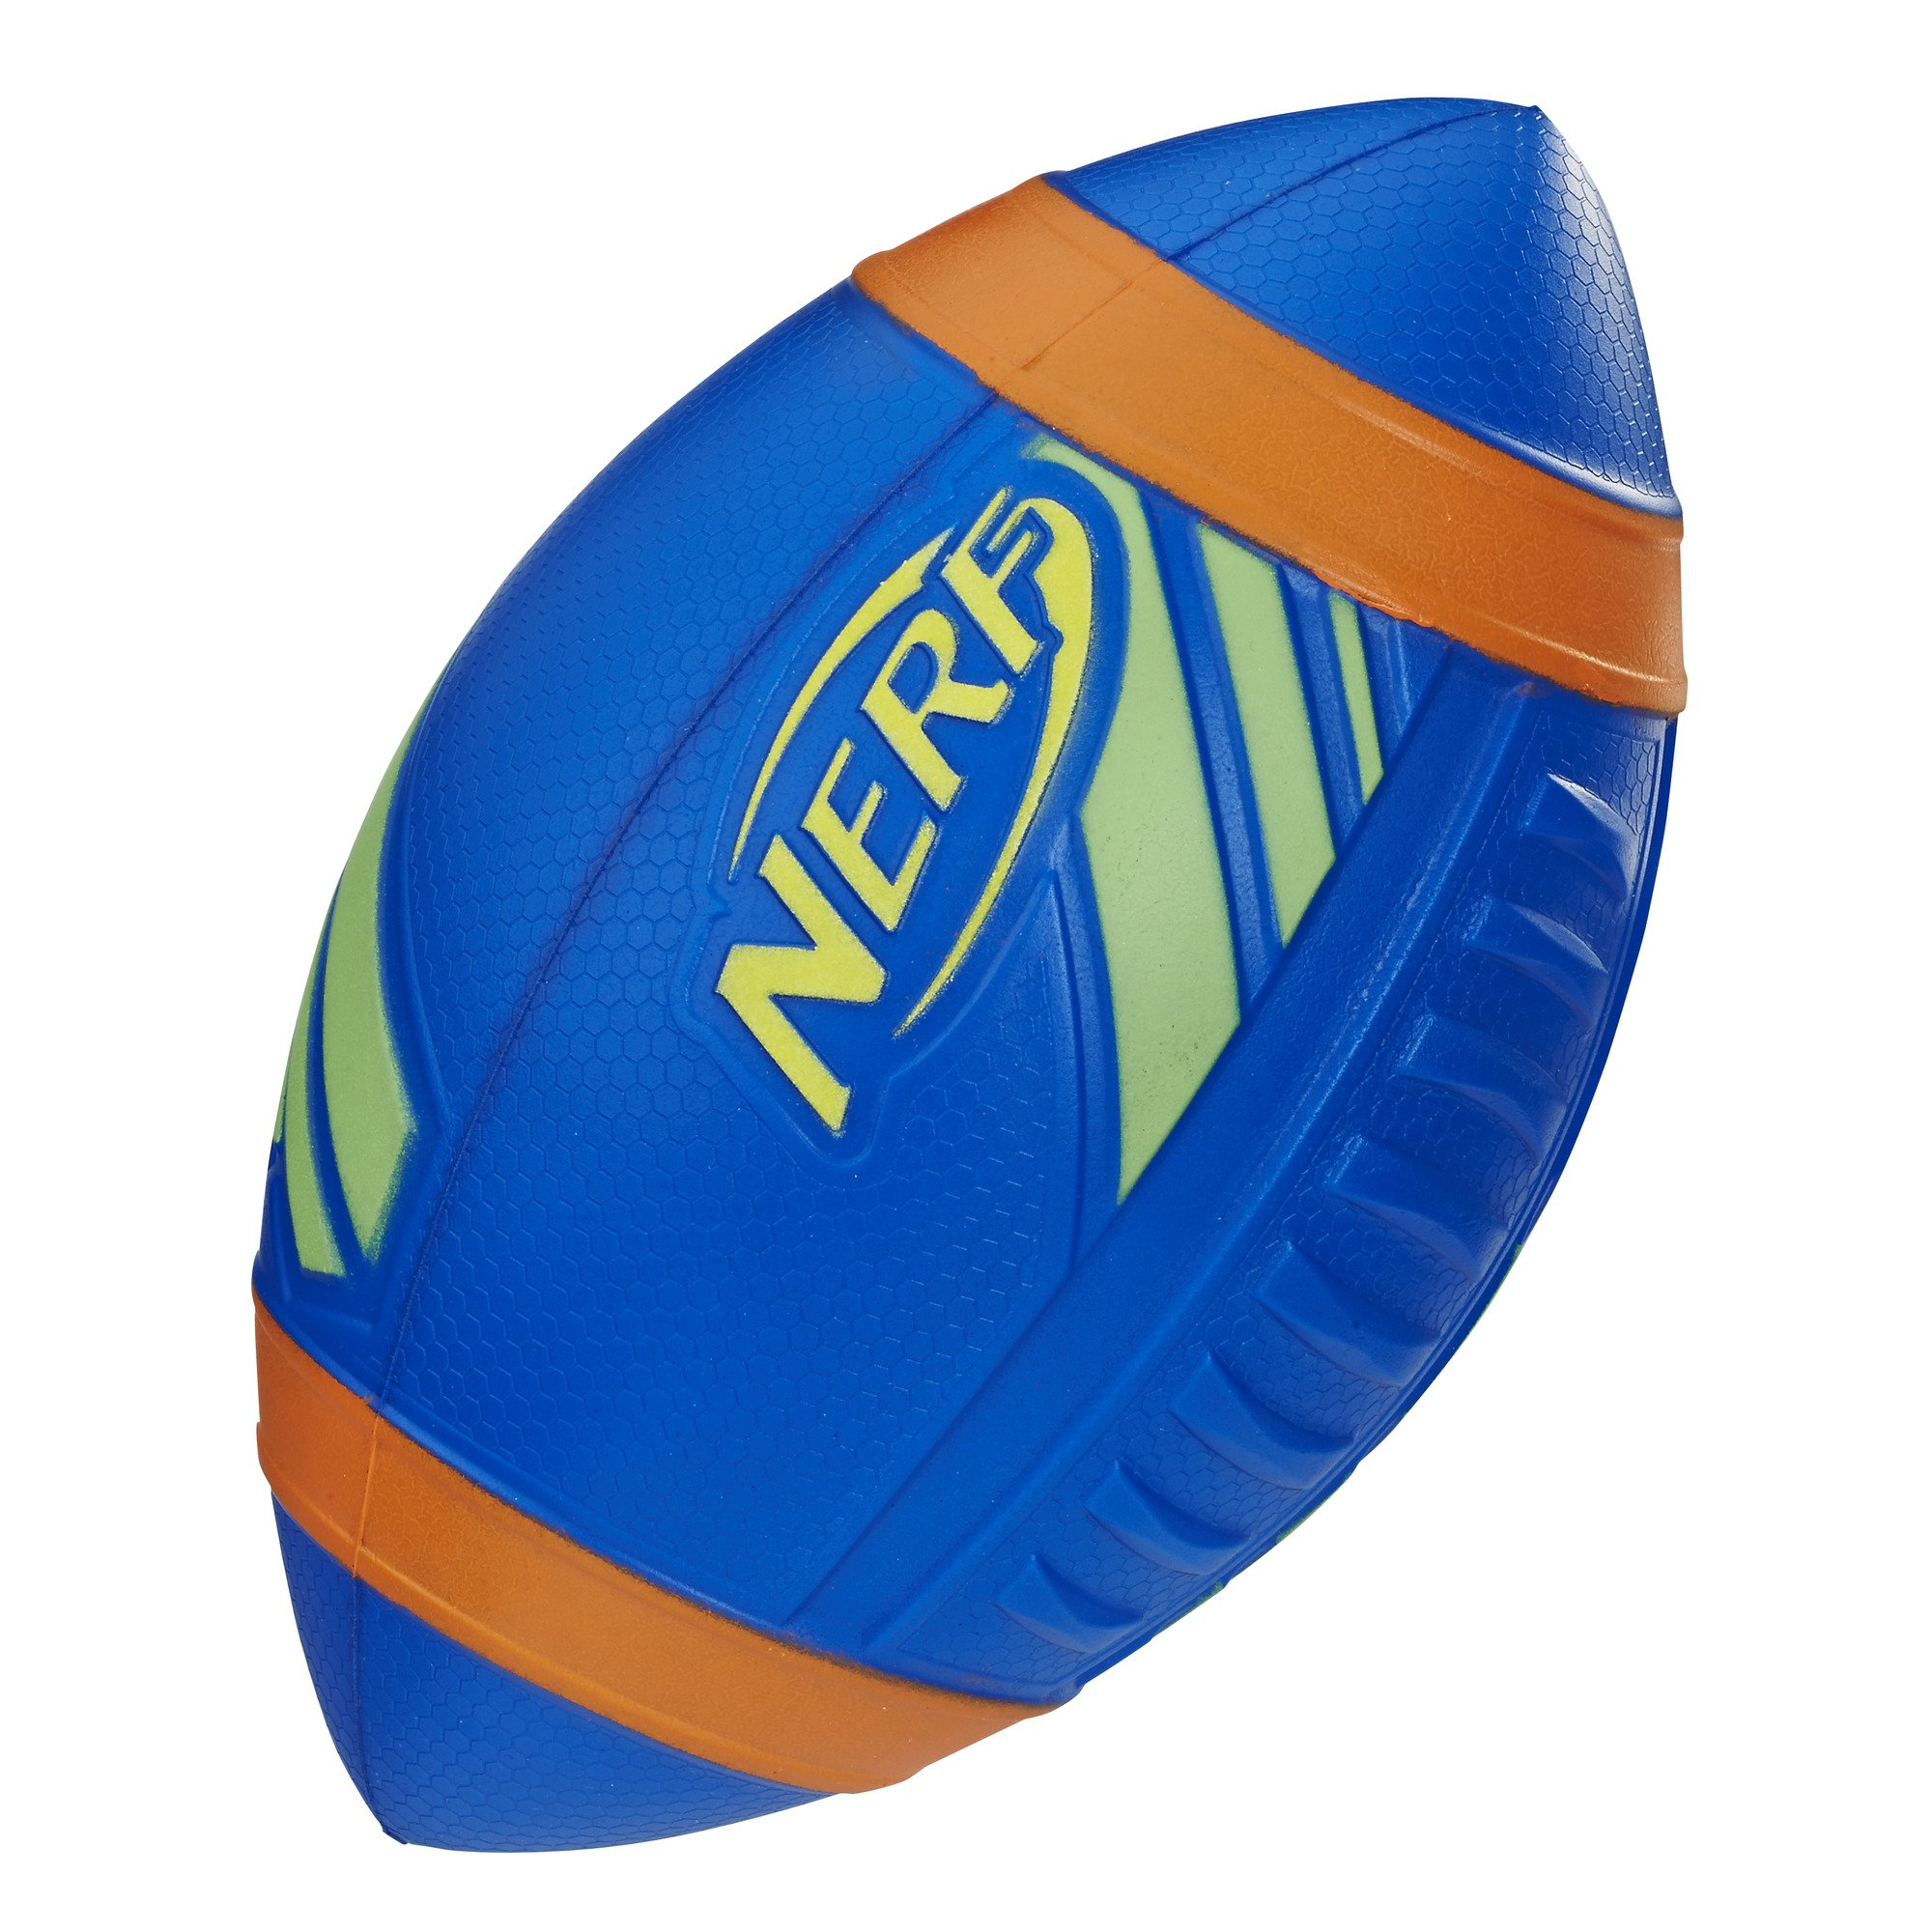 Nerf Sports Pro Grip Football (blue football) by NERF